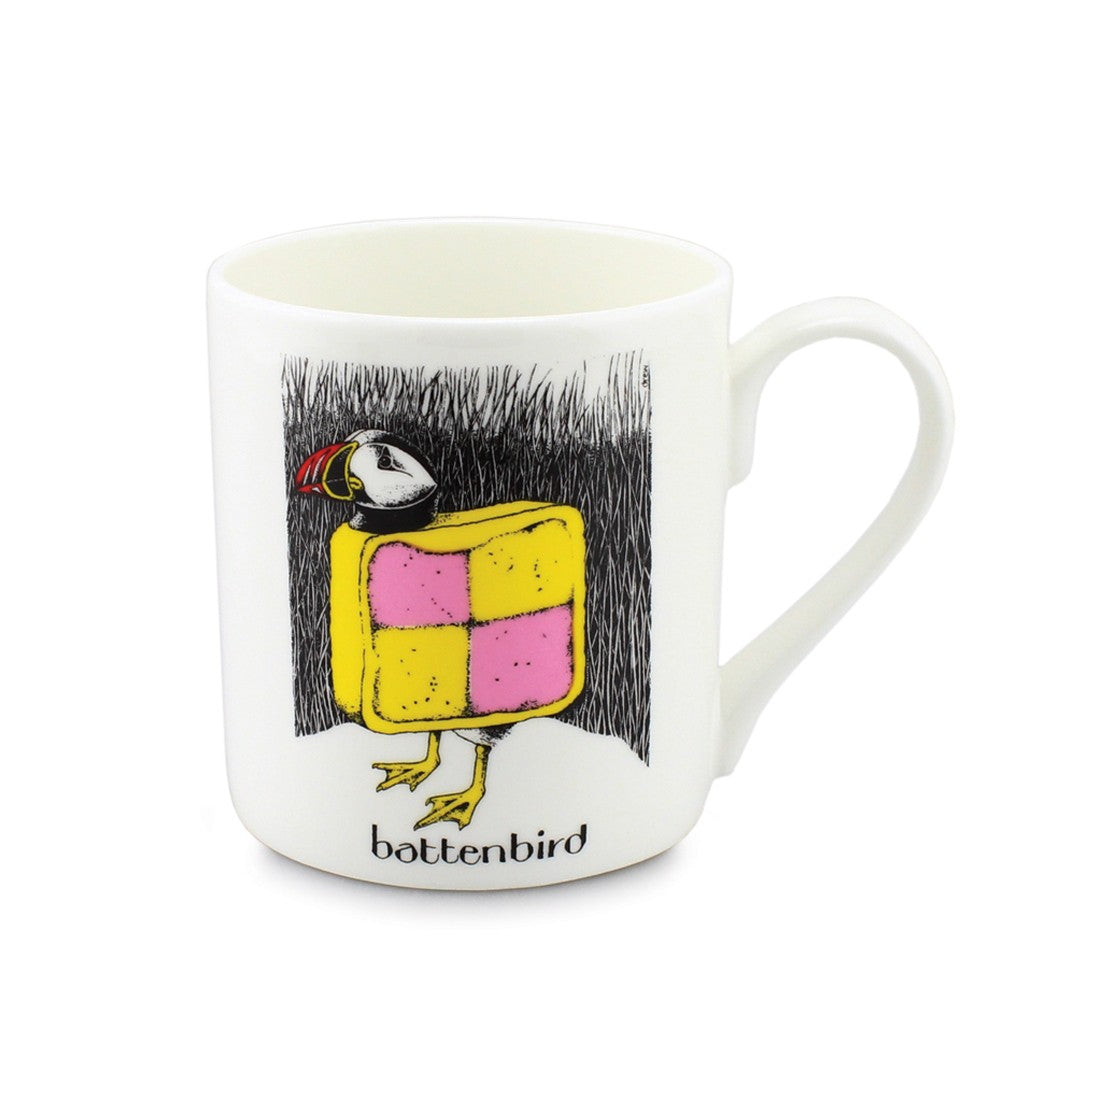 Simon Drew Battenbird China Mug